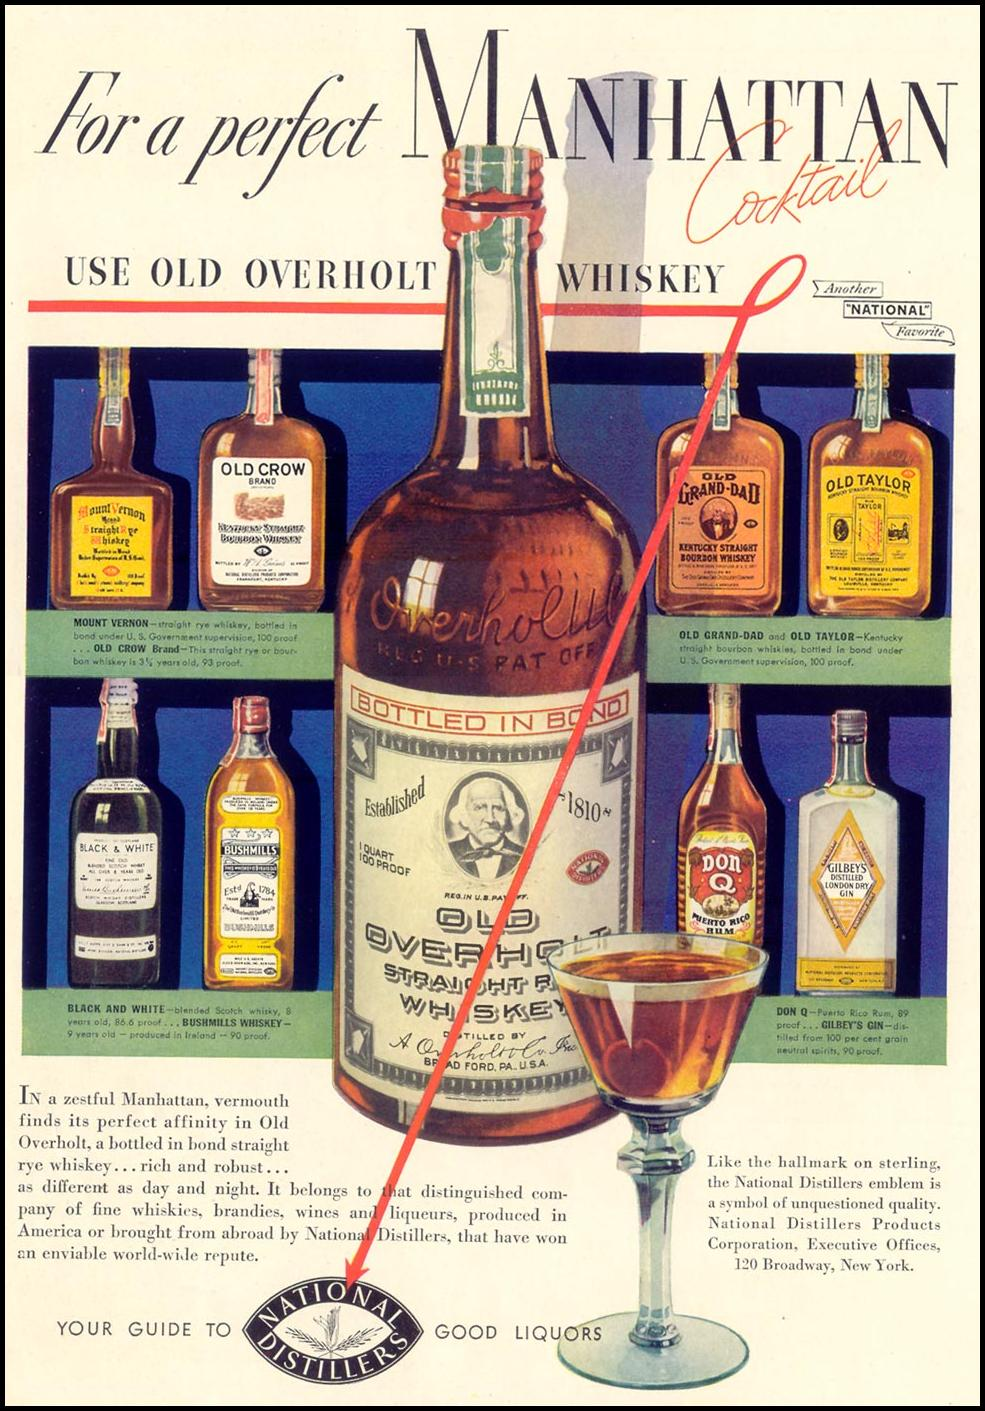 OLD OVERHOLT WHISKEY LIFE 09/13/1937 INSIDE BACK